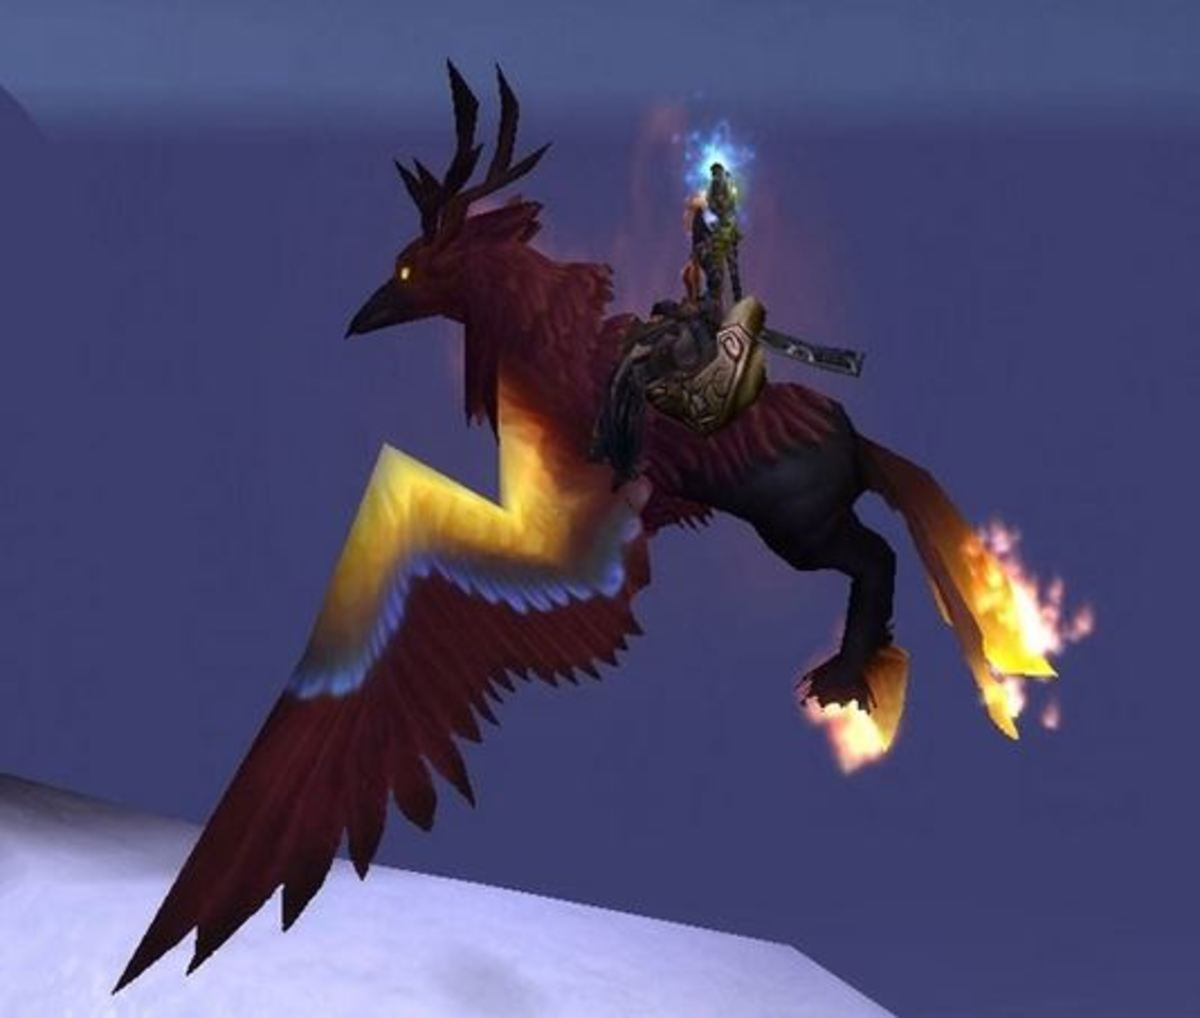 The Blazing Hippogryph in game.